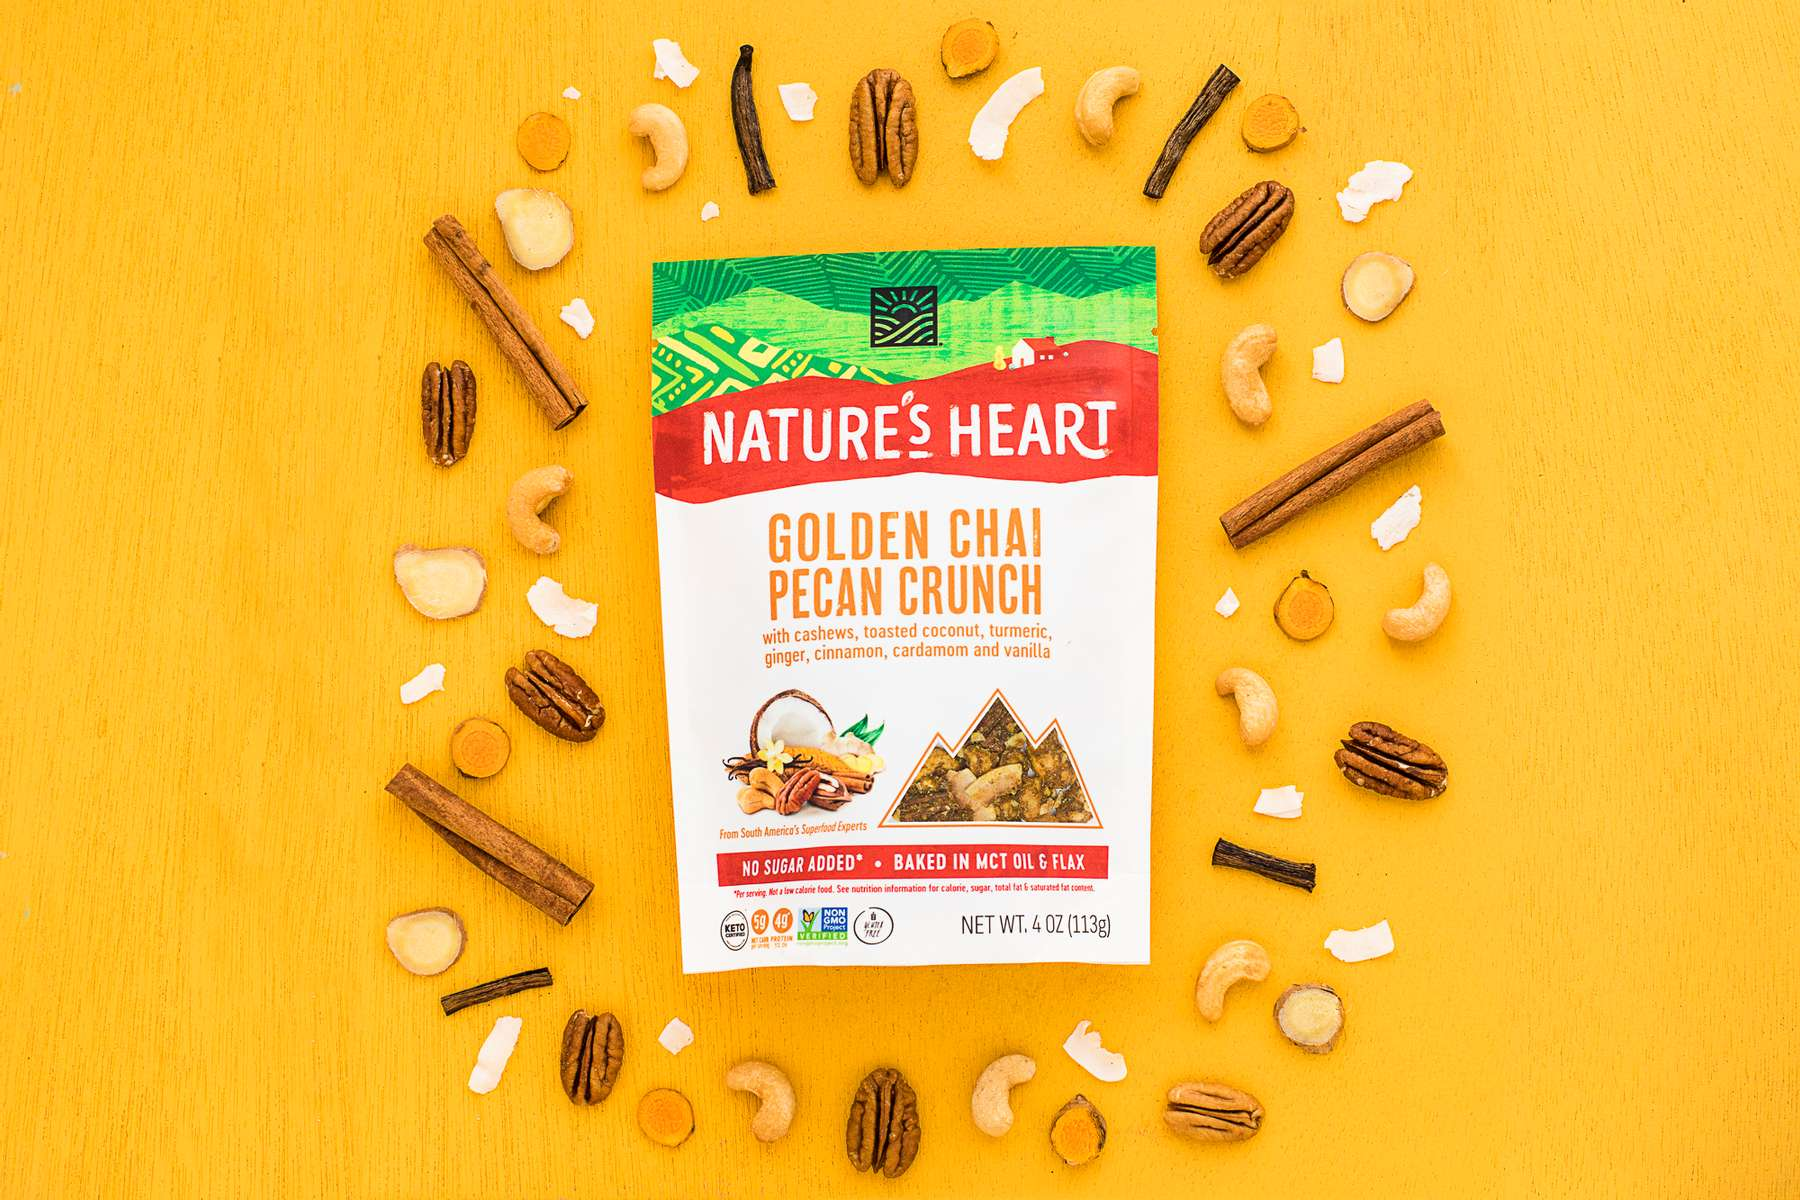 Food photography of granola Golden Chai Pecan Crunch, shot for Nature's Heart, by JAM Creative food photographers.